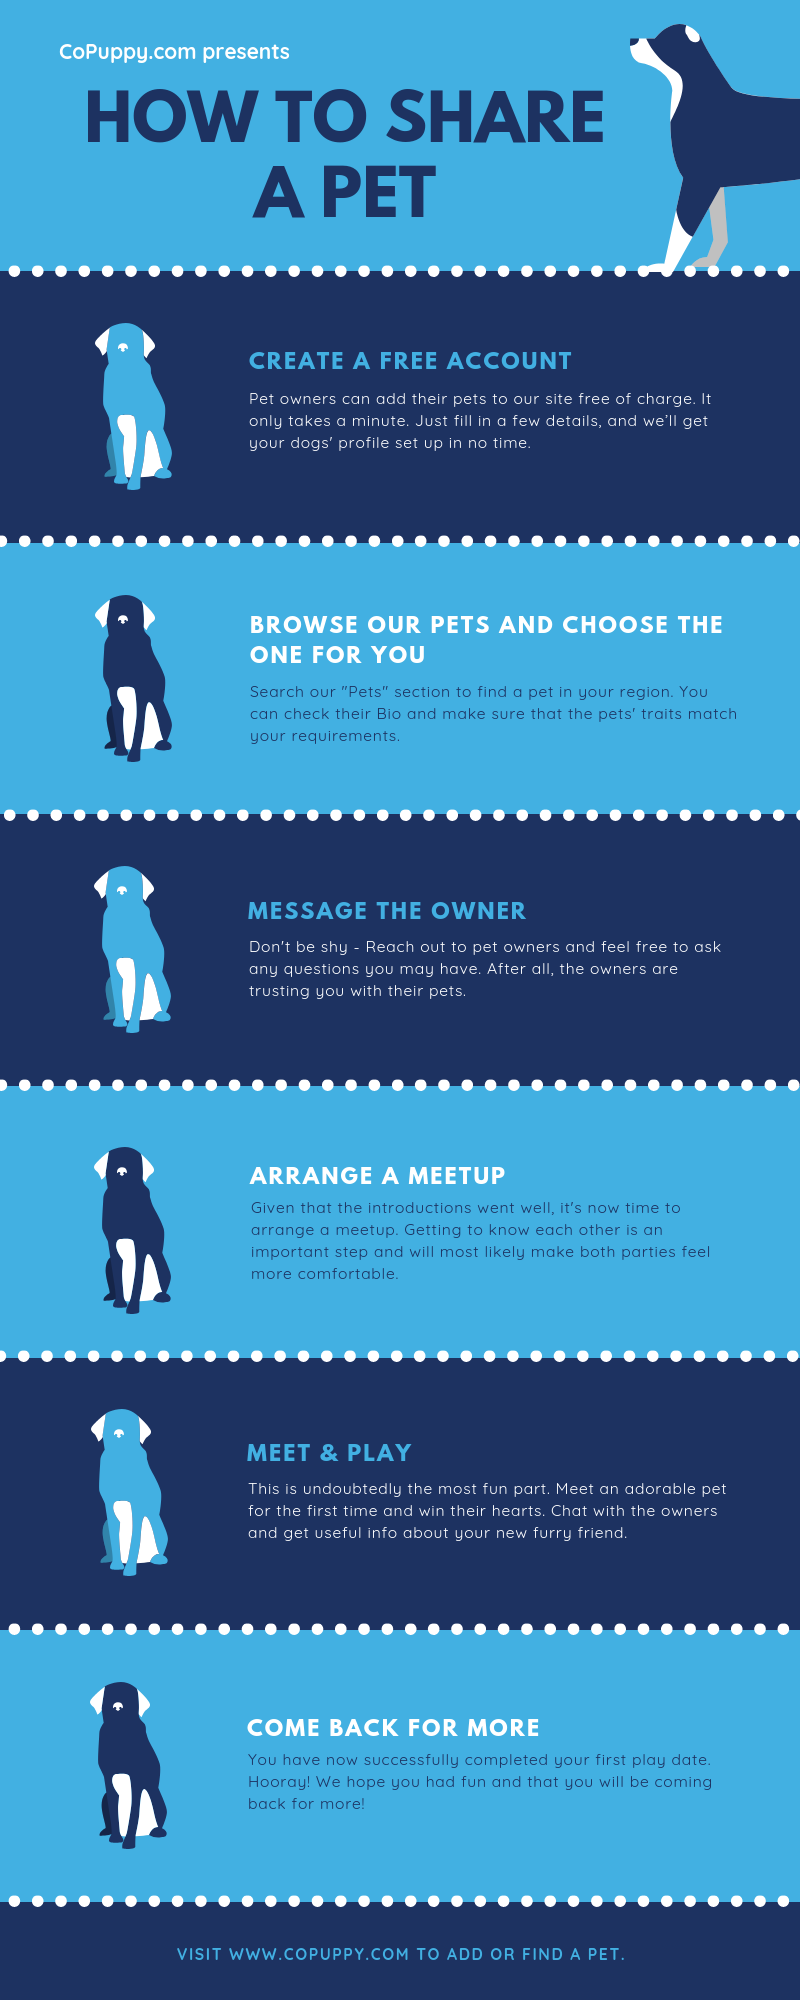 copuppy how to share a pet